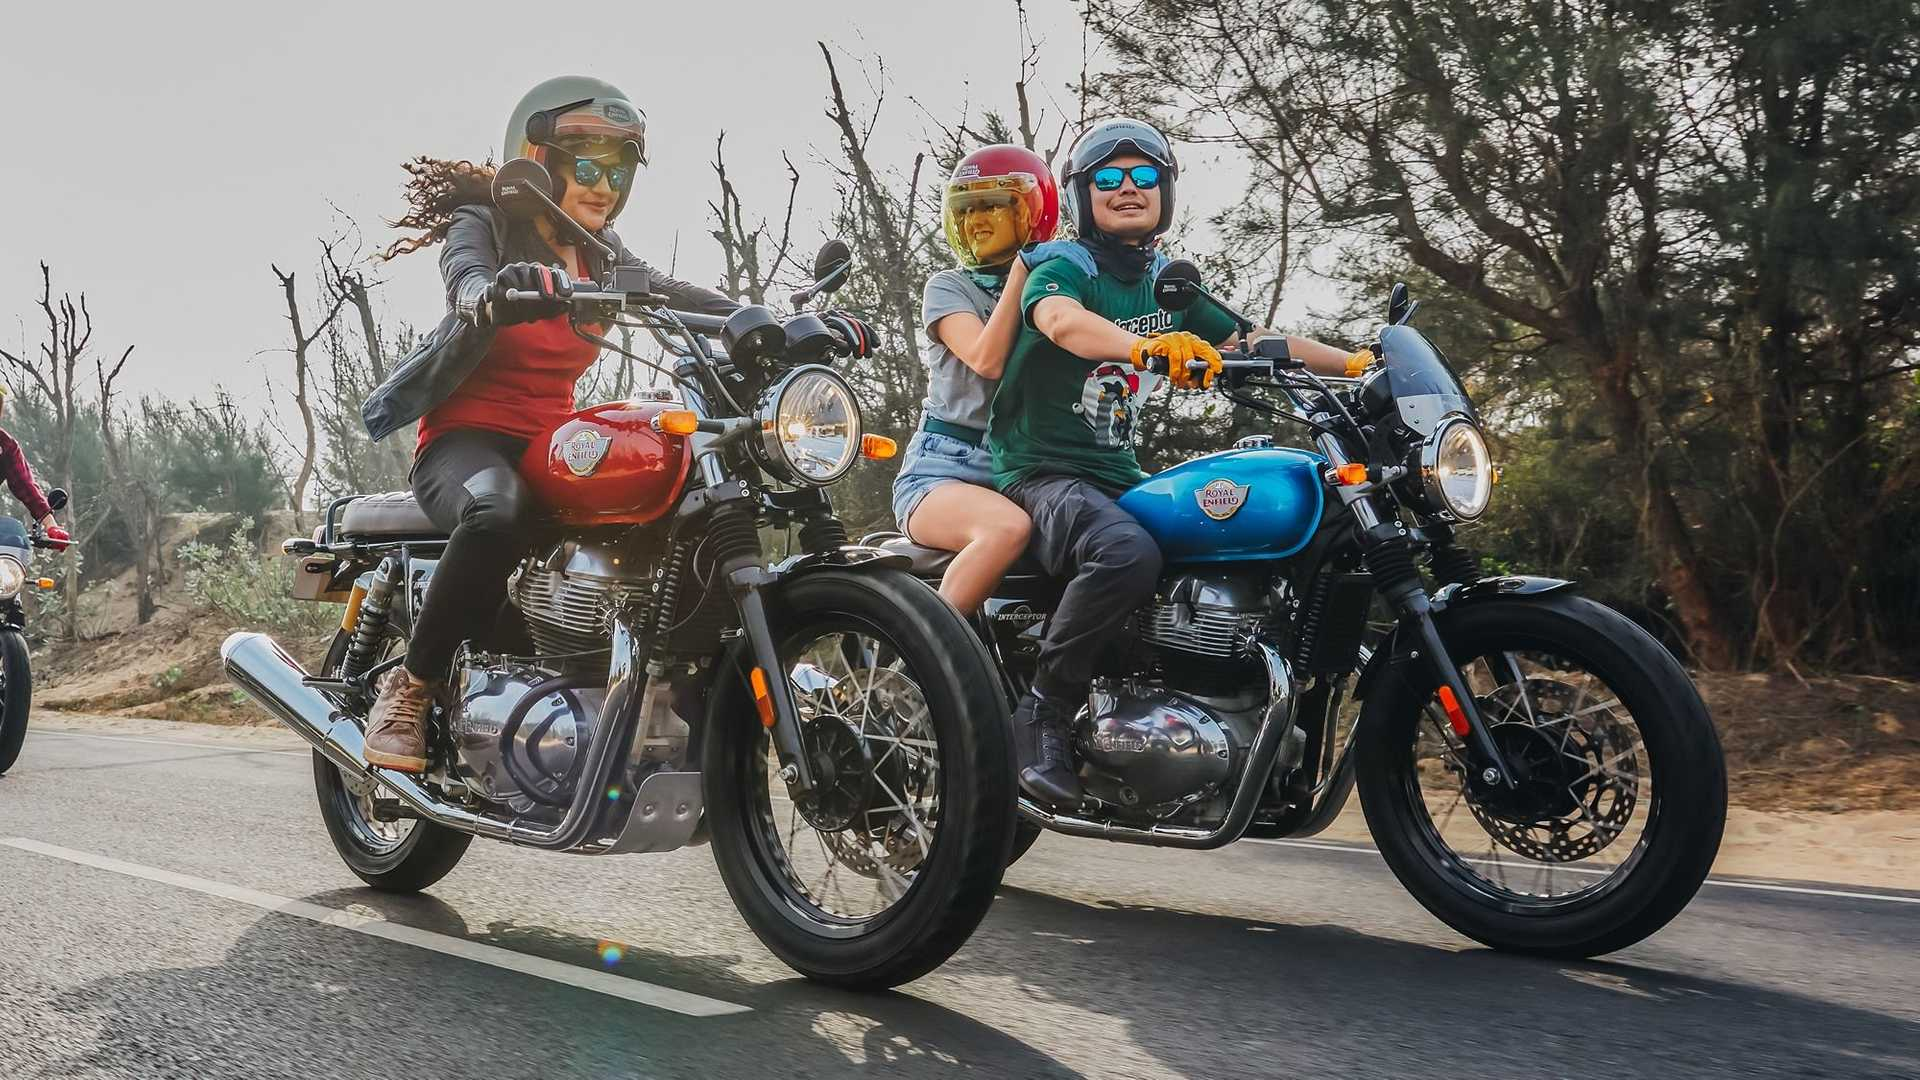 Royal Enfield brand,Royal Enfield brand,royal enfield brand ambassador,royal enfield brand country,royal enfield brand name,royal enfield brand store,royal enfield brand value,royal enfield brand owner,royal enfield brand positioning,royal enfield brand history